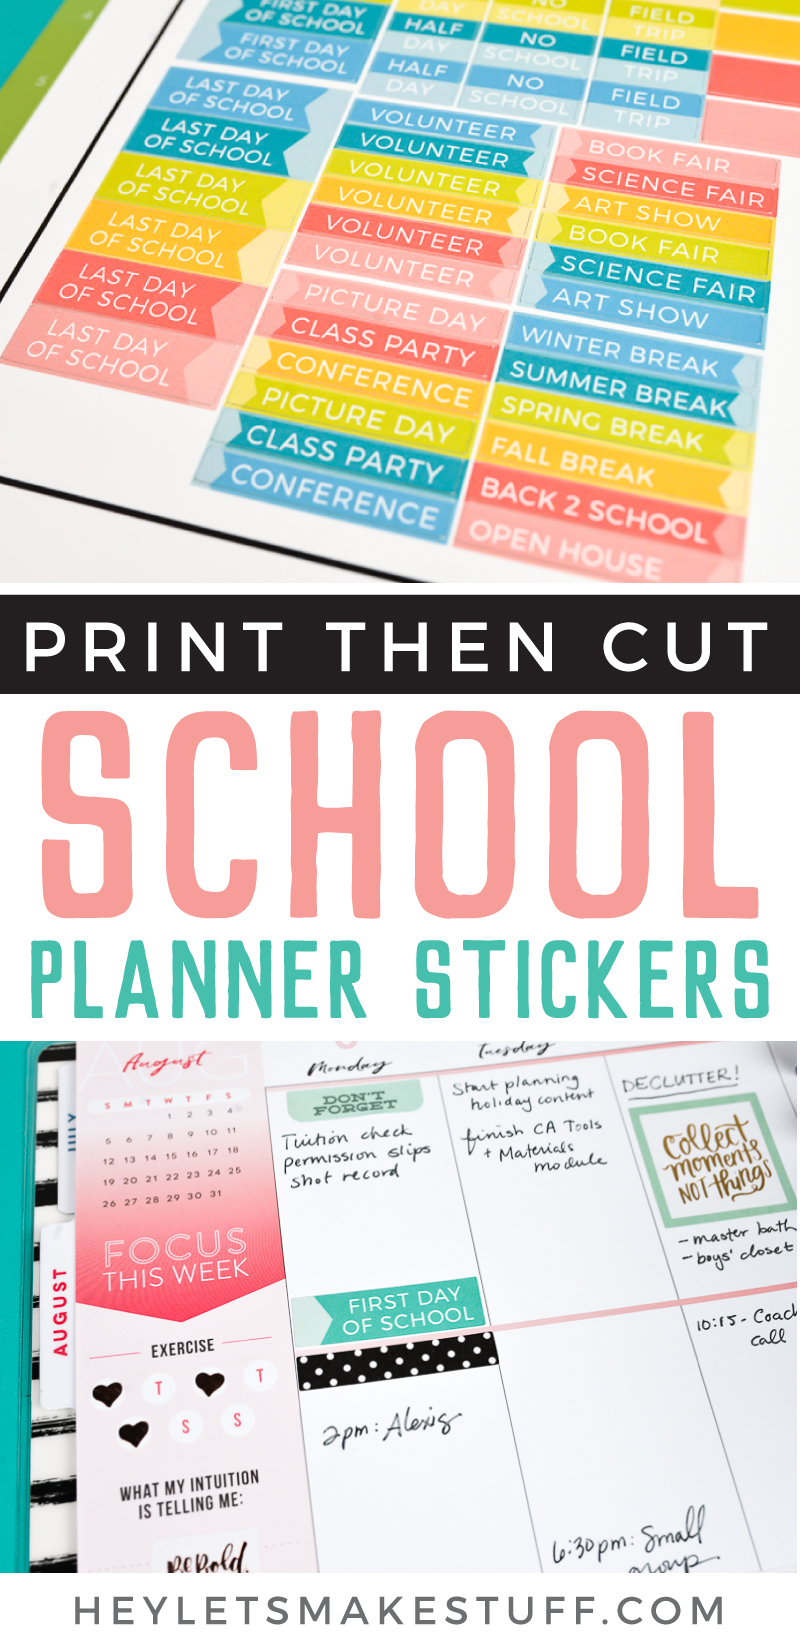 Plan ahead for the new school year with these printable back to school planner stickers! Print on sticker paper or use Cricut Print then Cut. Plus get my best beginner planner tips! via @heyletsmakestuf